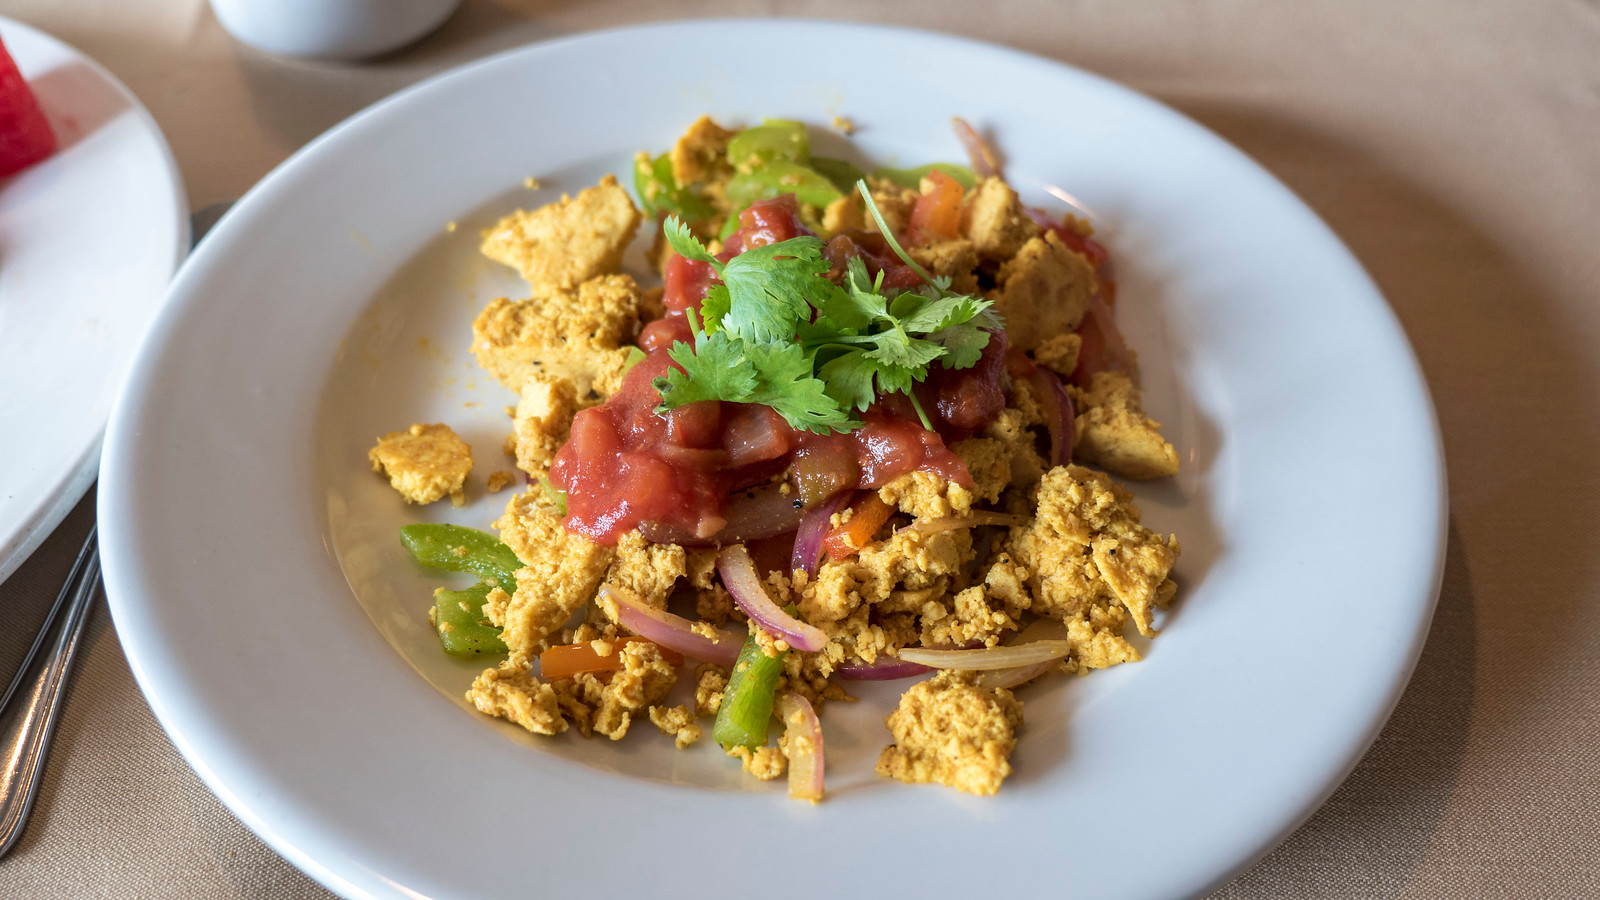 Tofu scramble at Oakwood Resort. Grand Bend Vegan and Vegetarian Restaurant Guide.